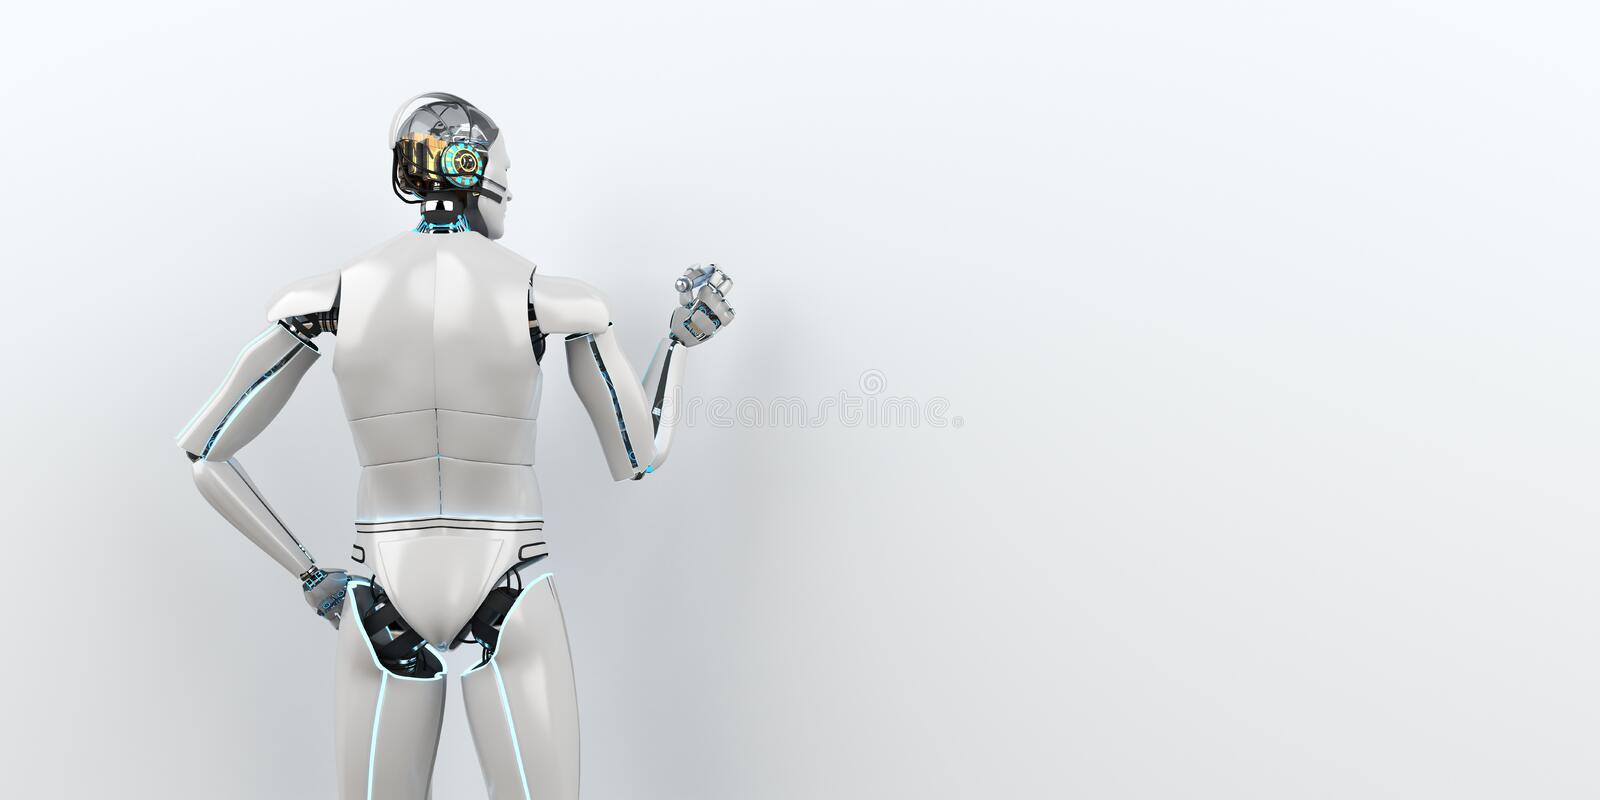 Humanoid robot advisor. Humanoid robot as advisor in front of a white board. 3d illustration royalty free illustration